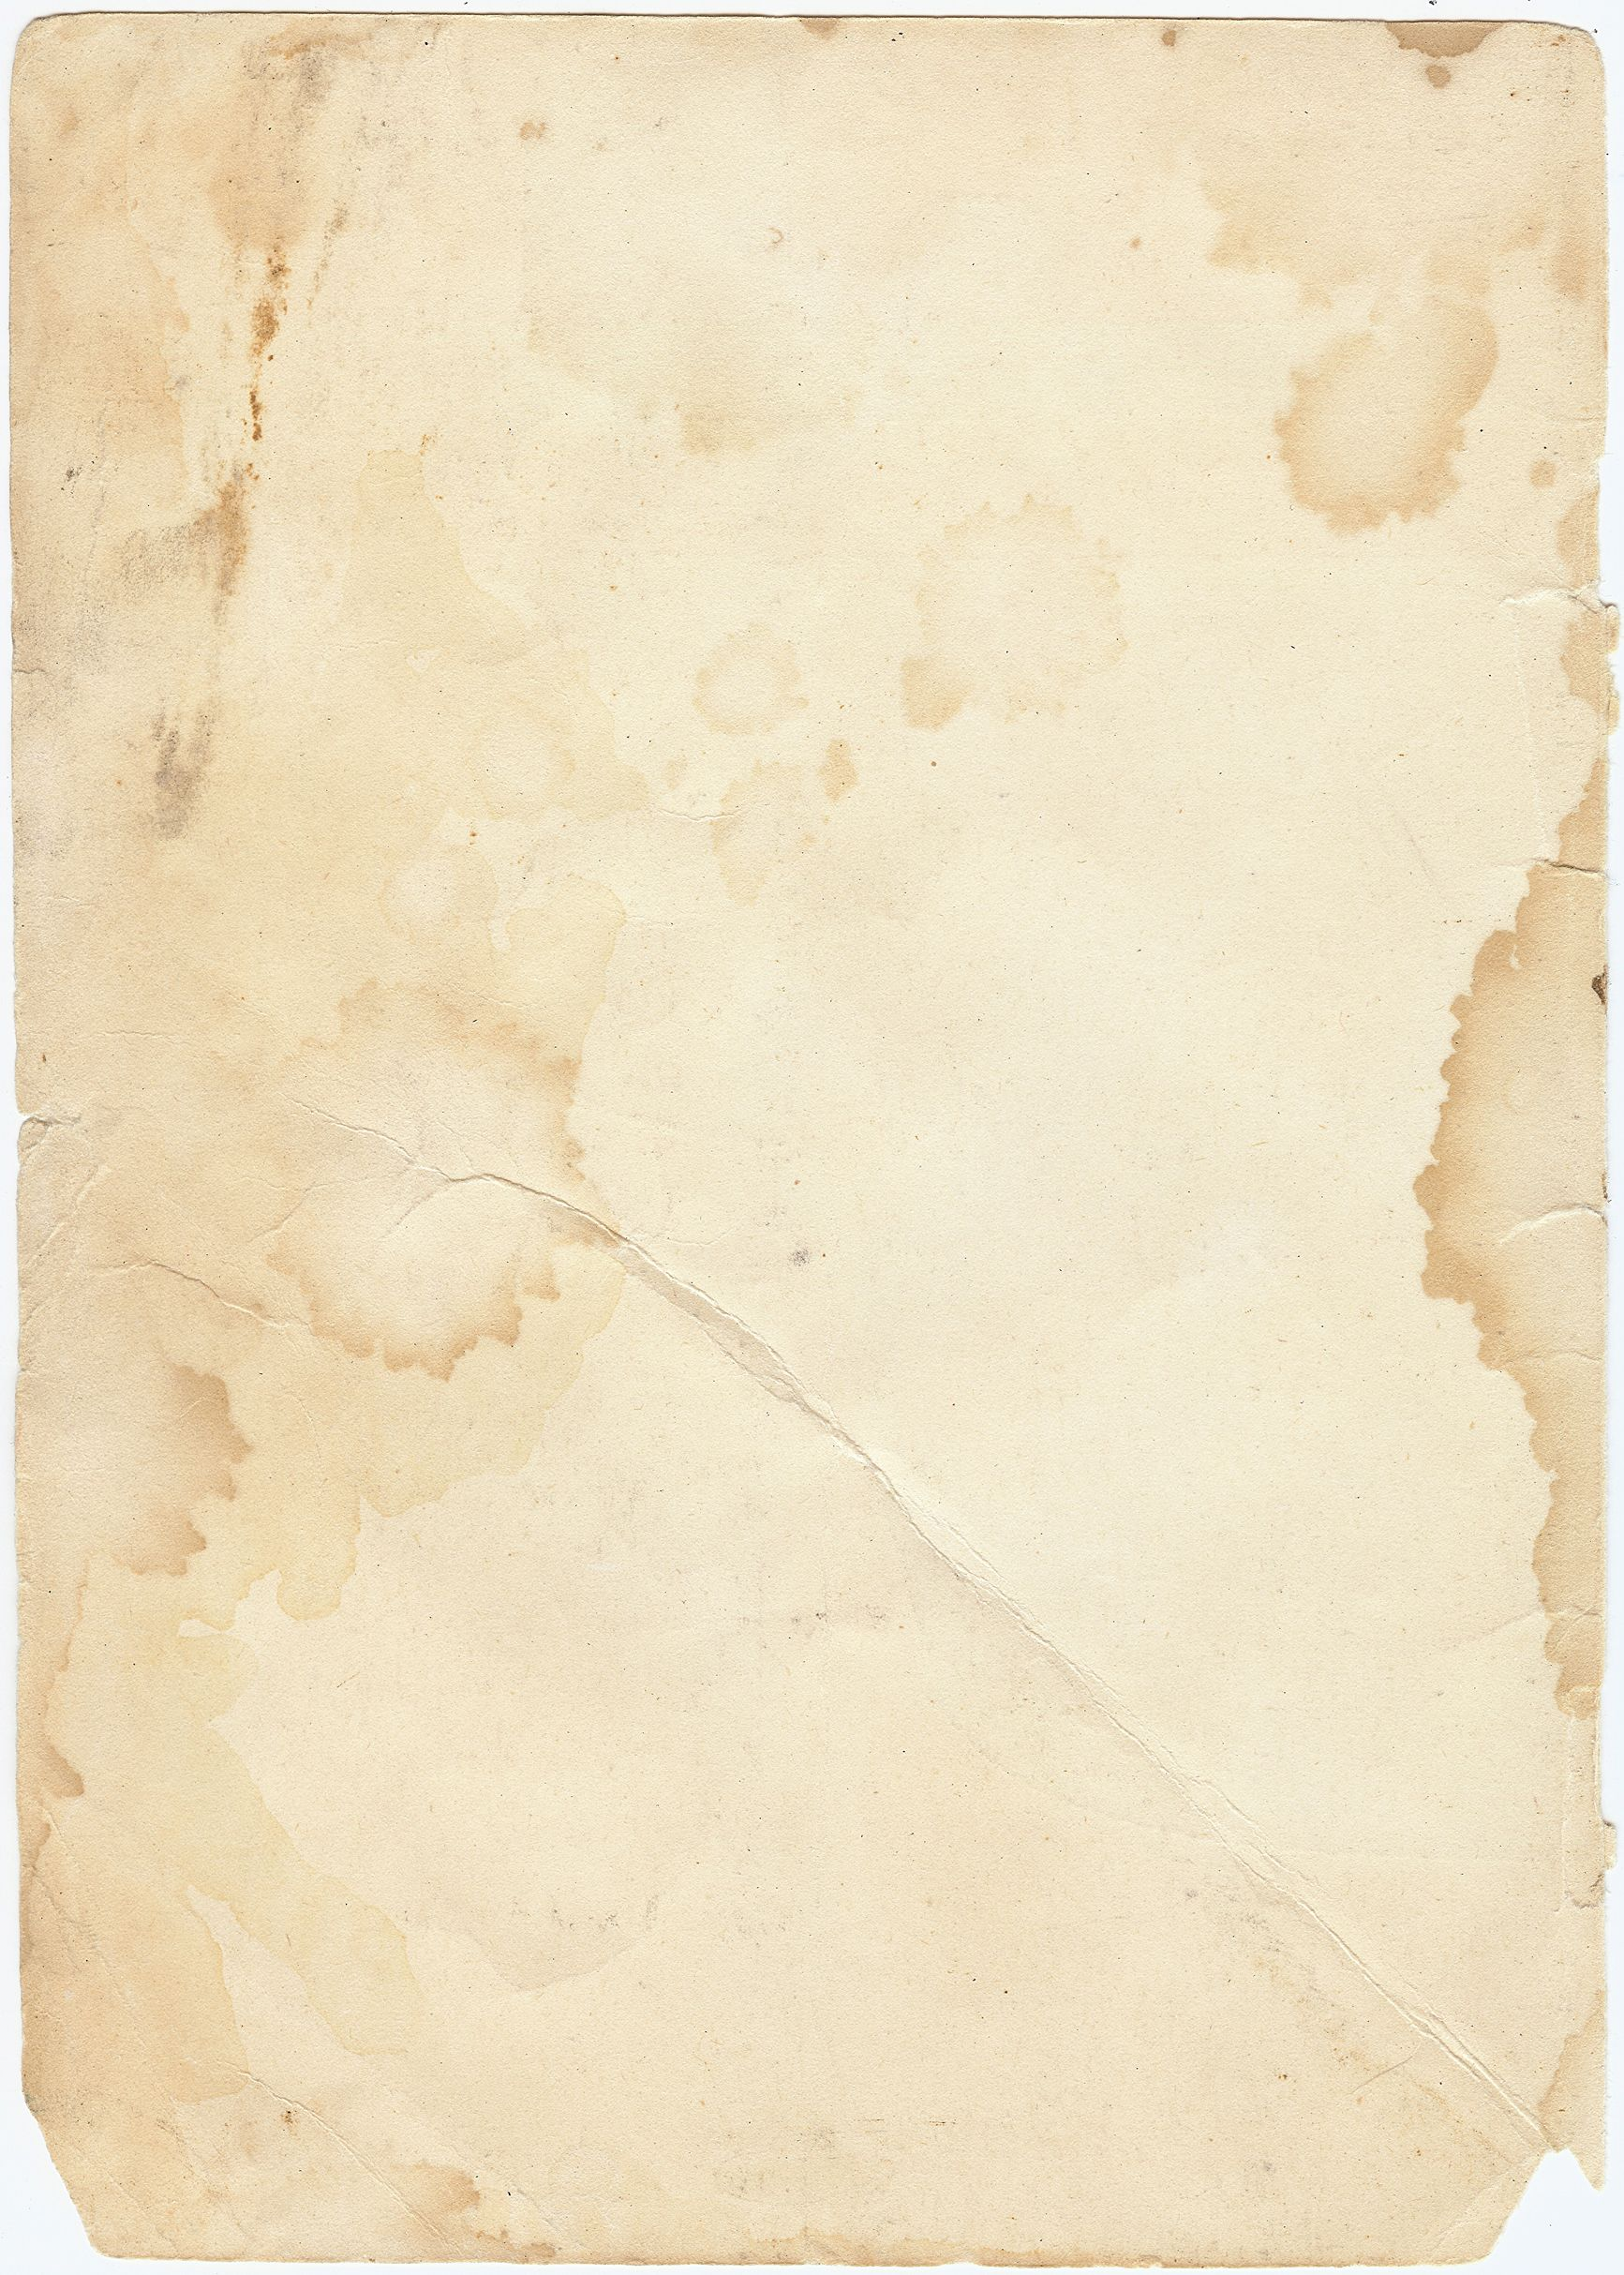 Old Paper Texture By Pandoraicons On Deviantart Free Paper Texture Photoshop Textures Paper Texture